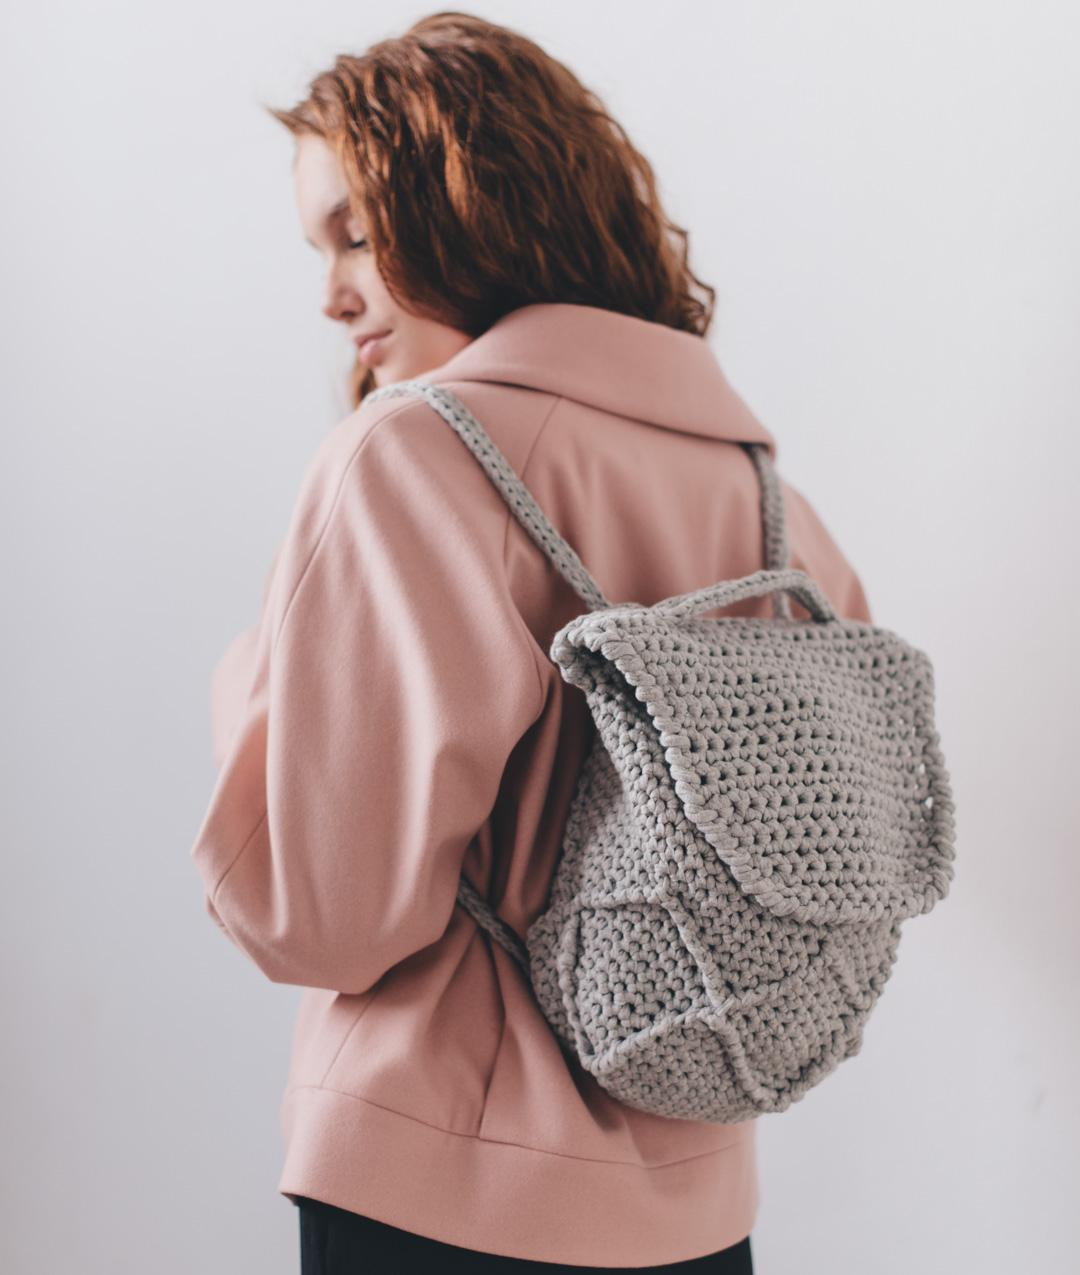 Borse  - Borse - DIAMOND BACKPACK - 1